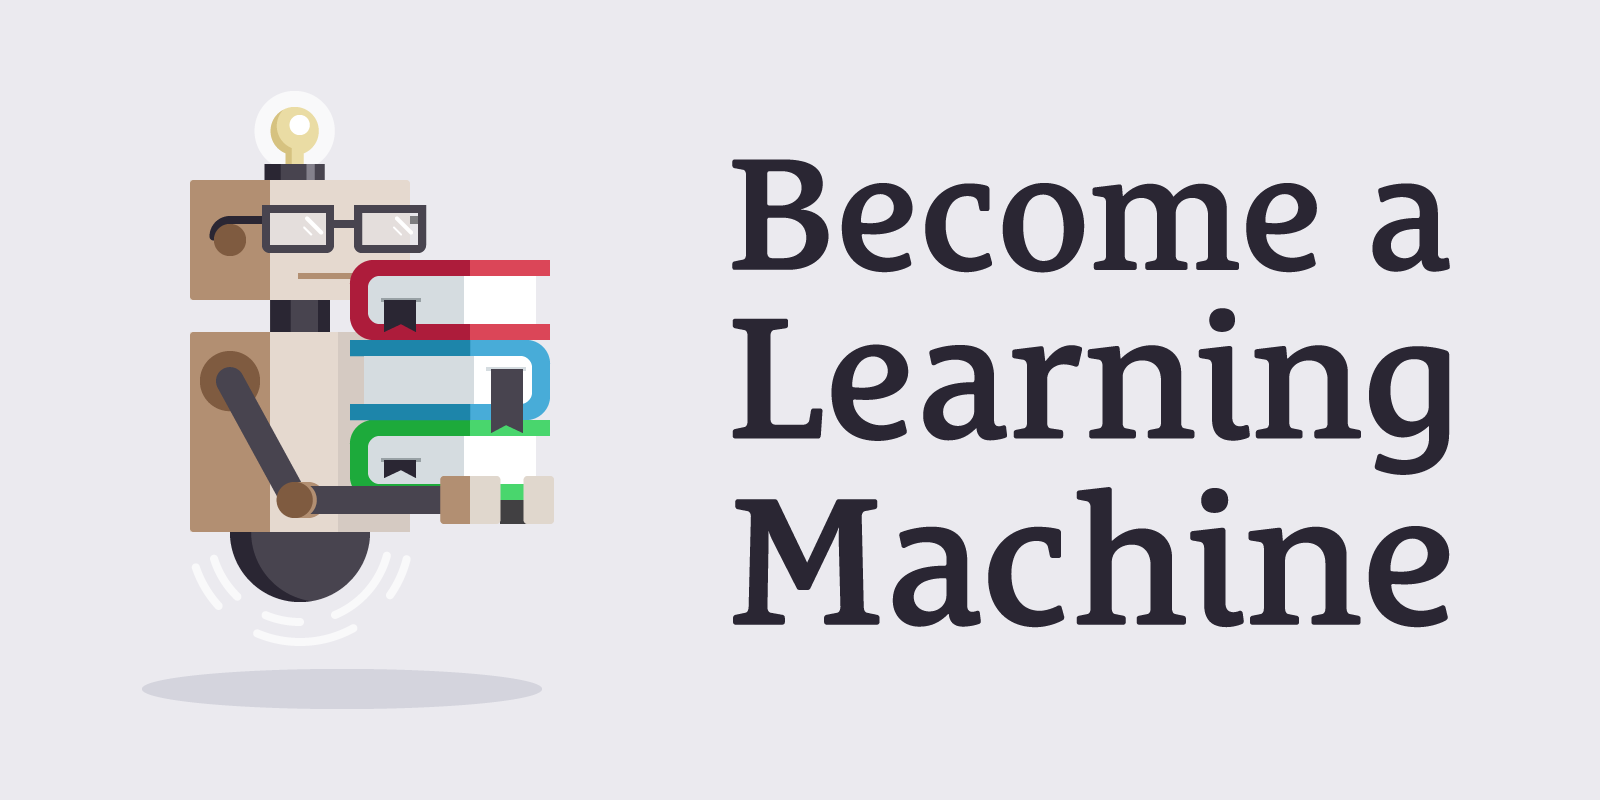 How to Become a Learning Machine